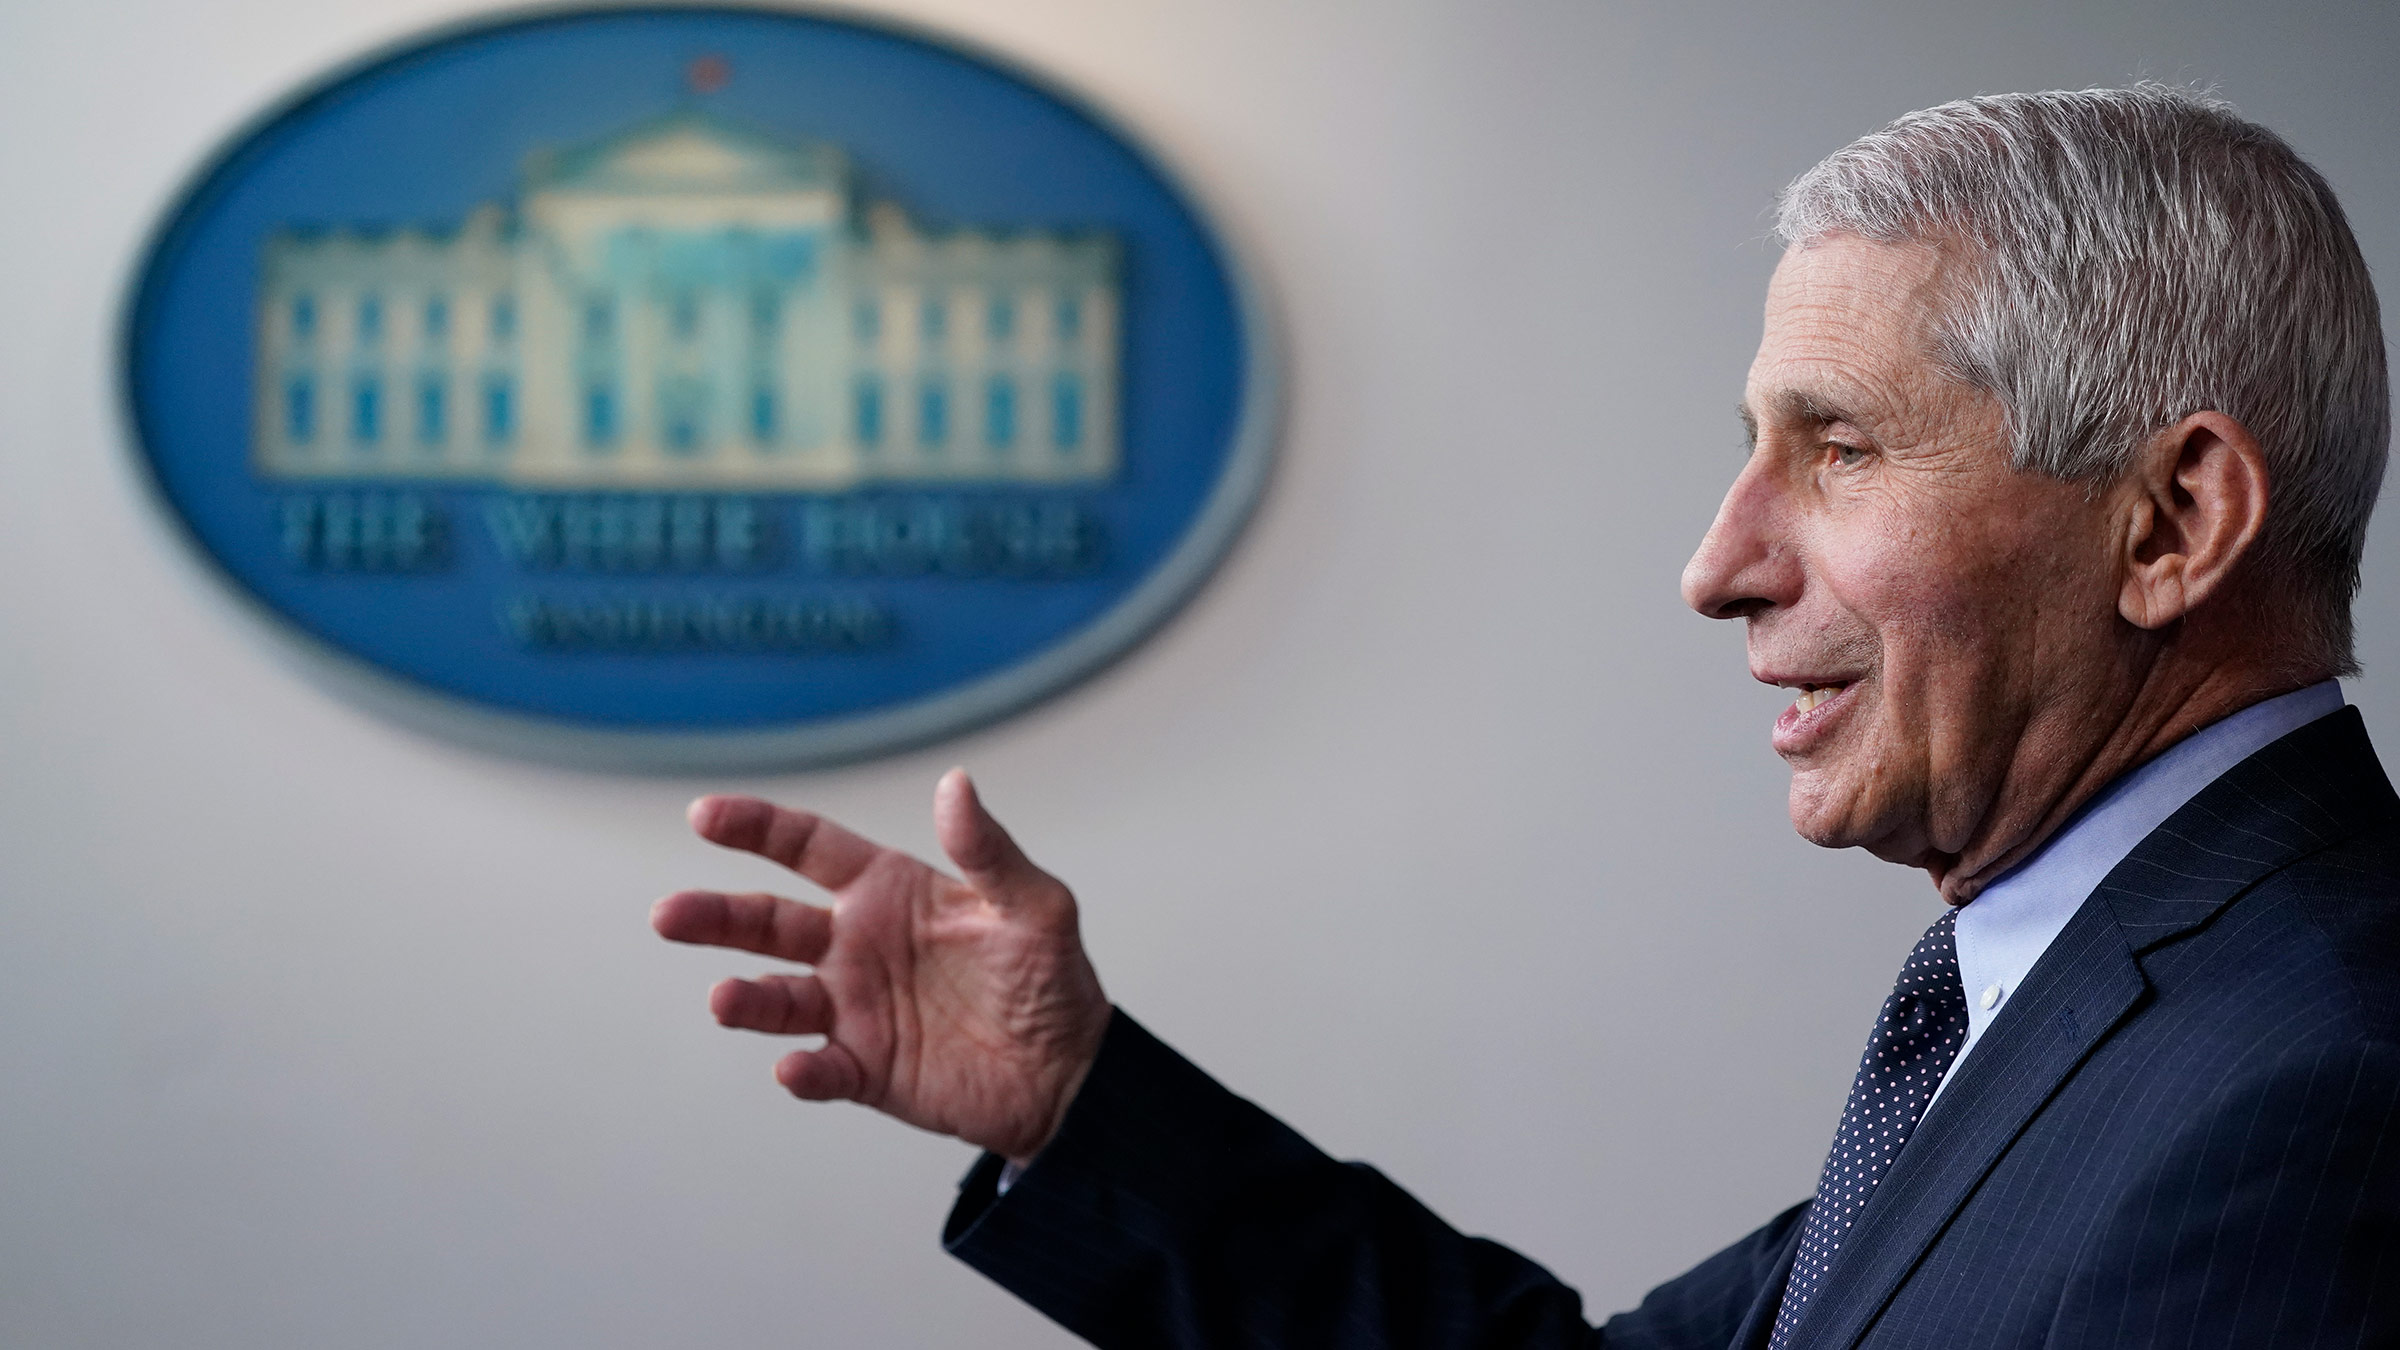 Dr. Anthony Fauci speaks with reporters at the White House on Thursday, January 21, in Washington, DC.